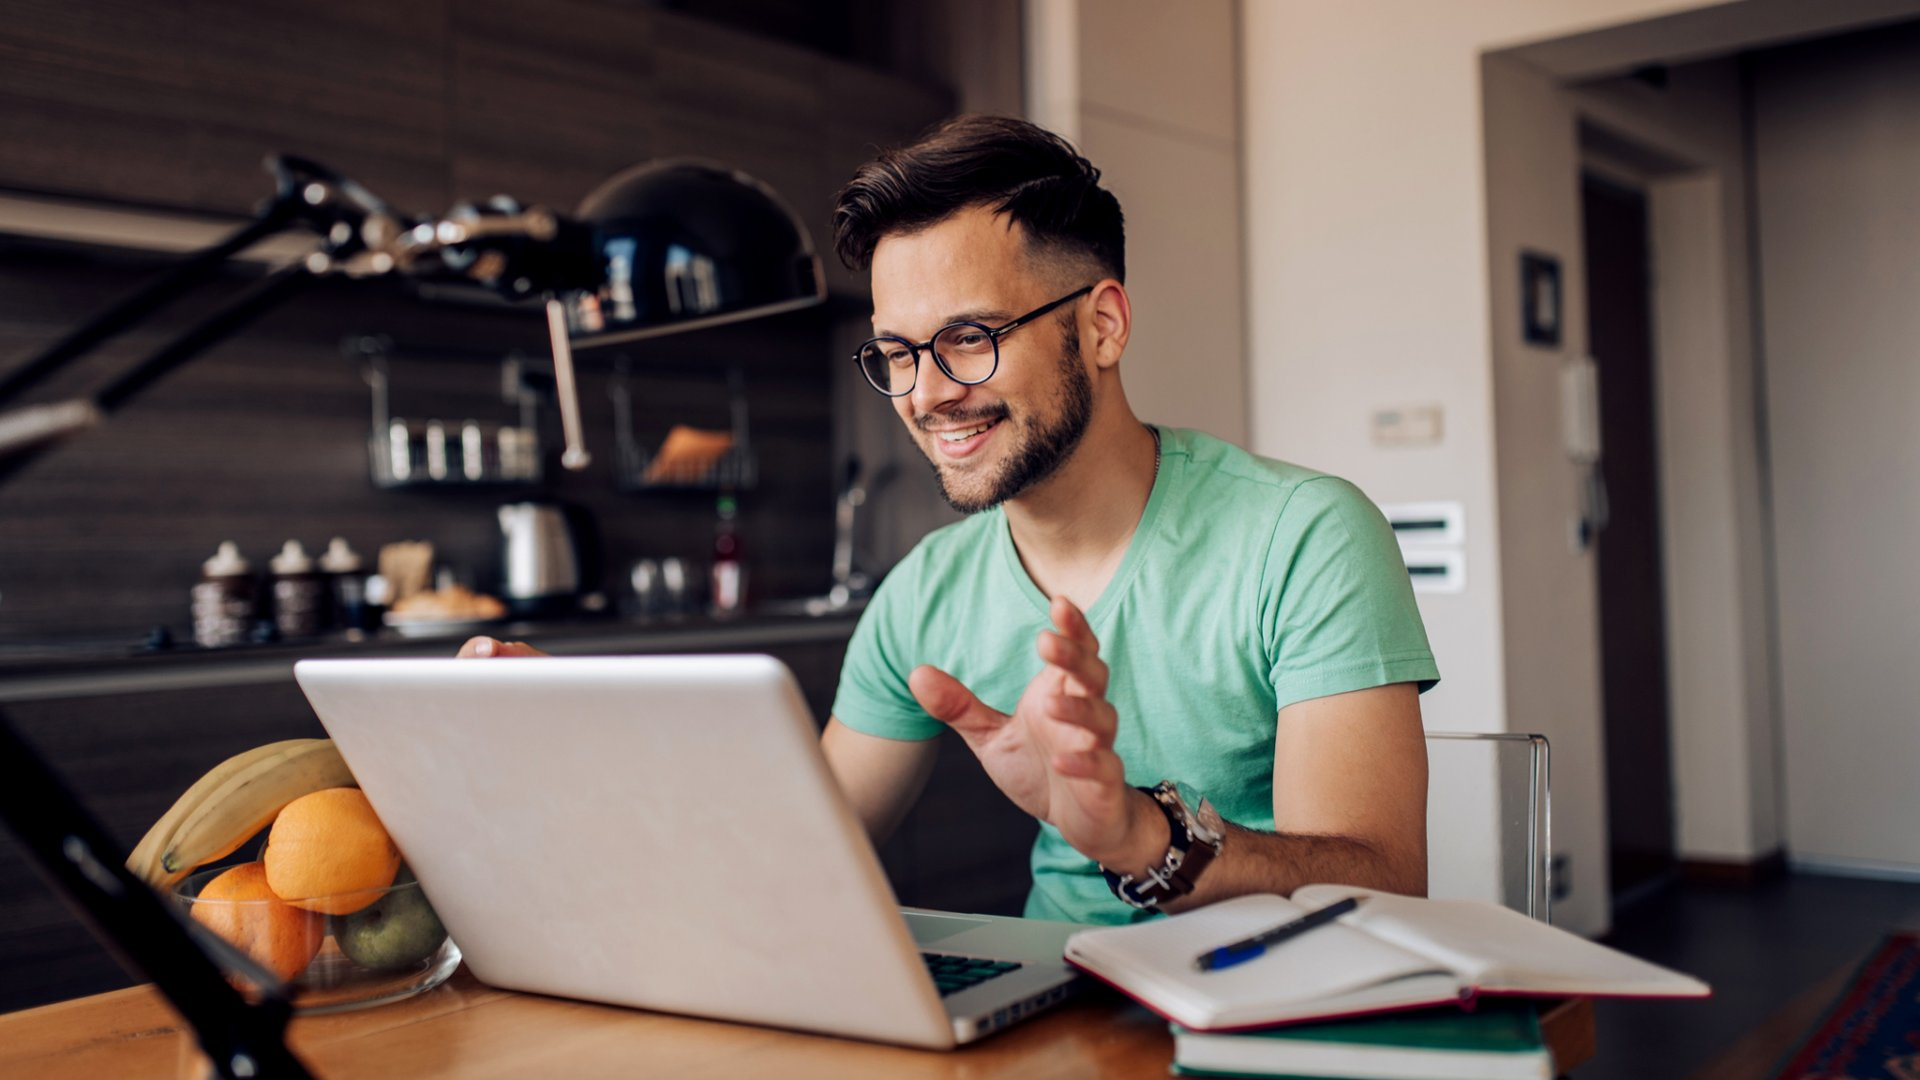 4 Habits From Remote Work to Bring Back to the Office